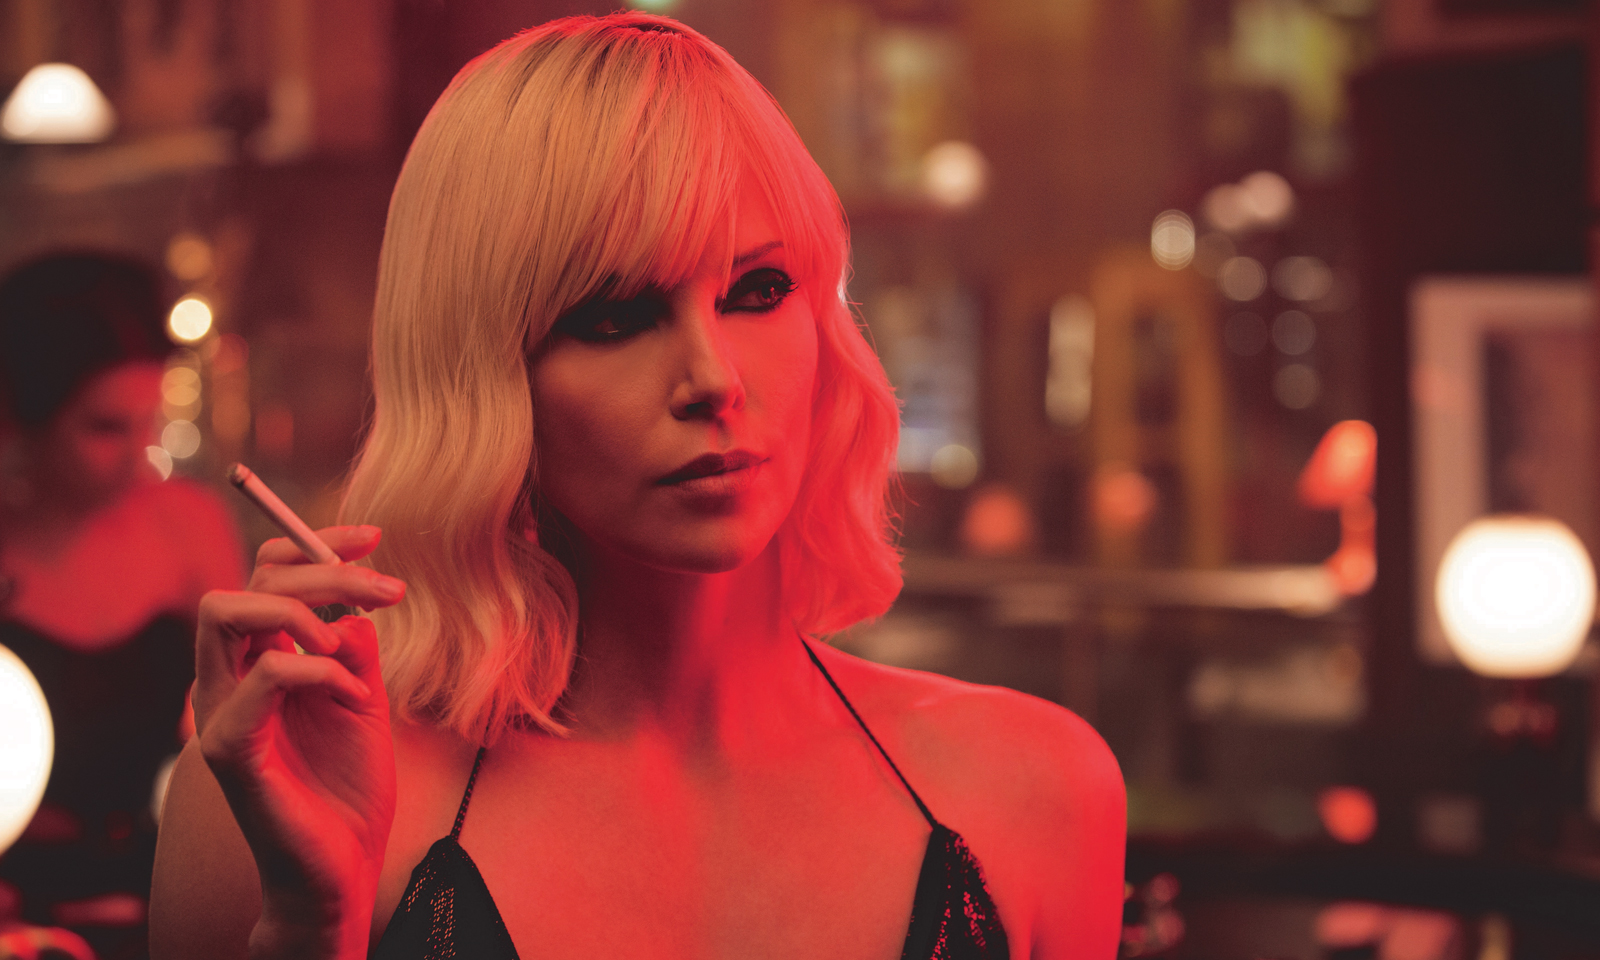 Oscar winner Charlize Theron star in Atomic Blonde